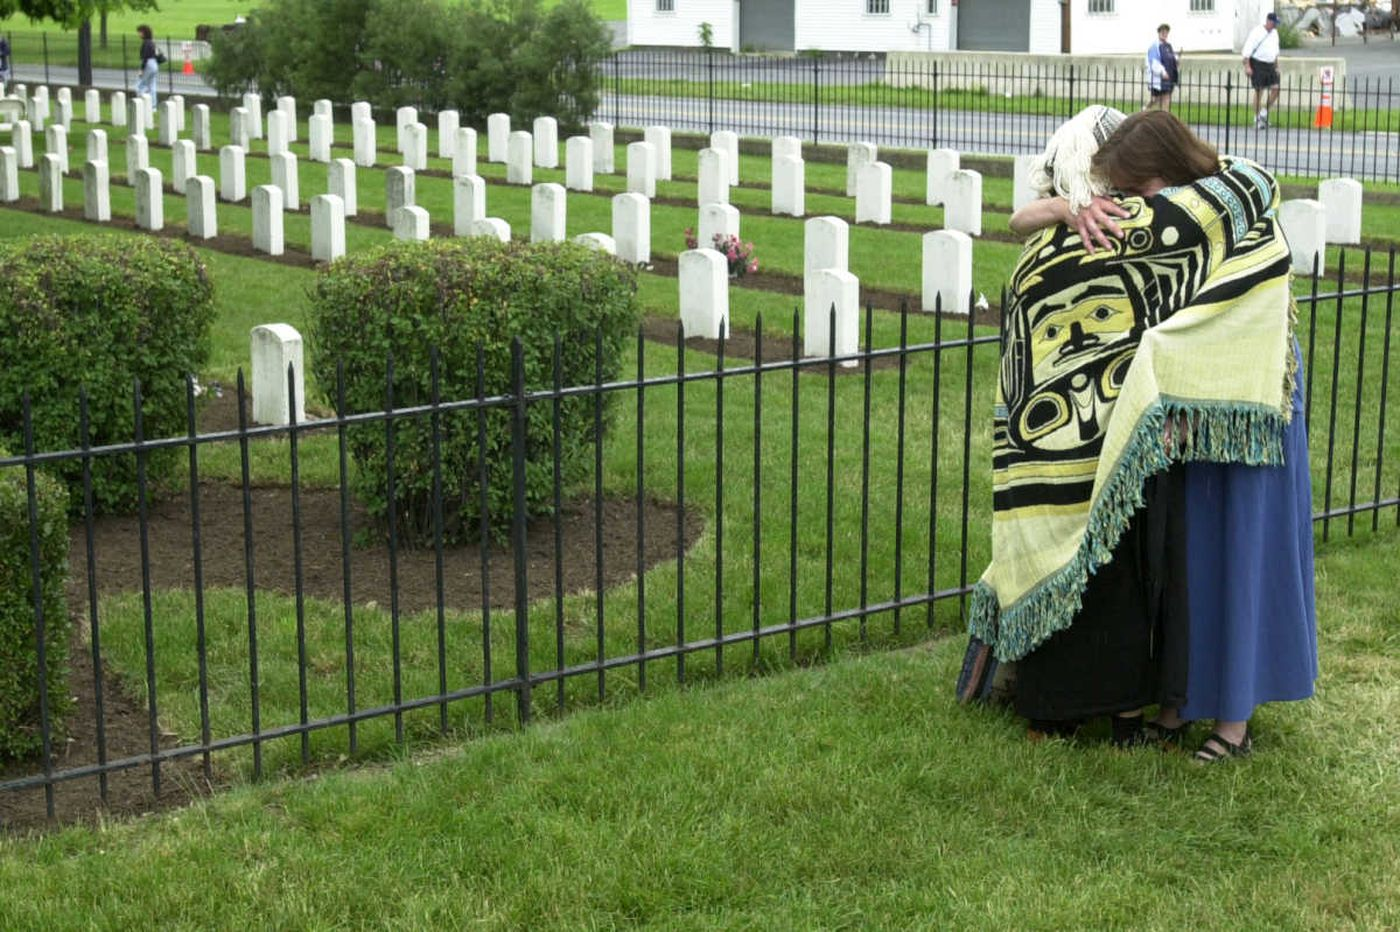 At Carlisle Indian school cemetery, a battle over a lost Alaskan child